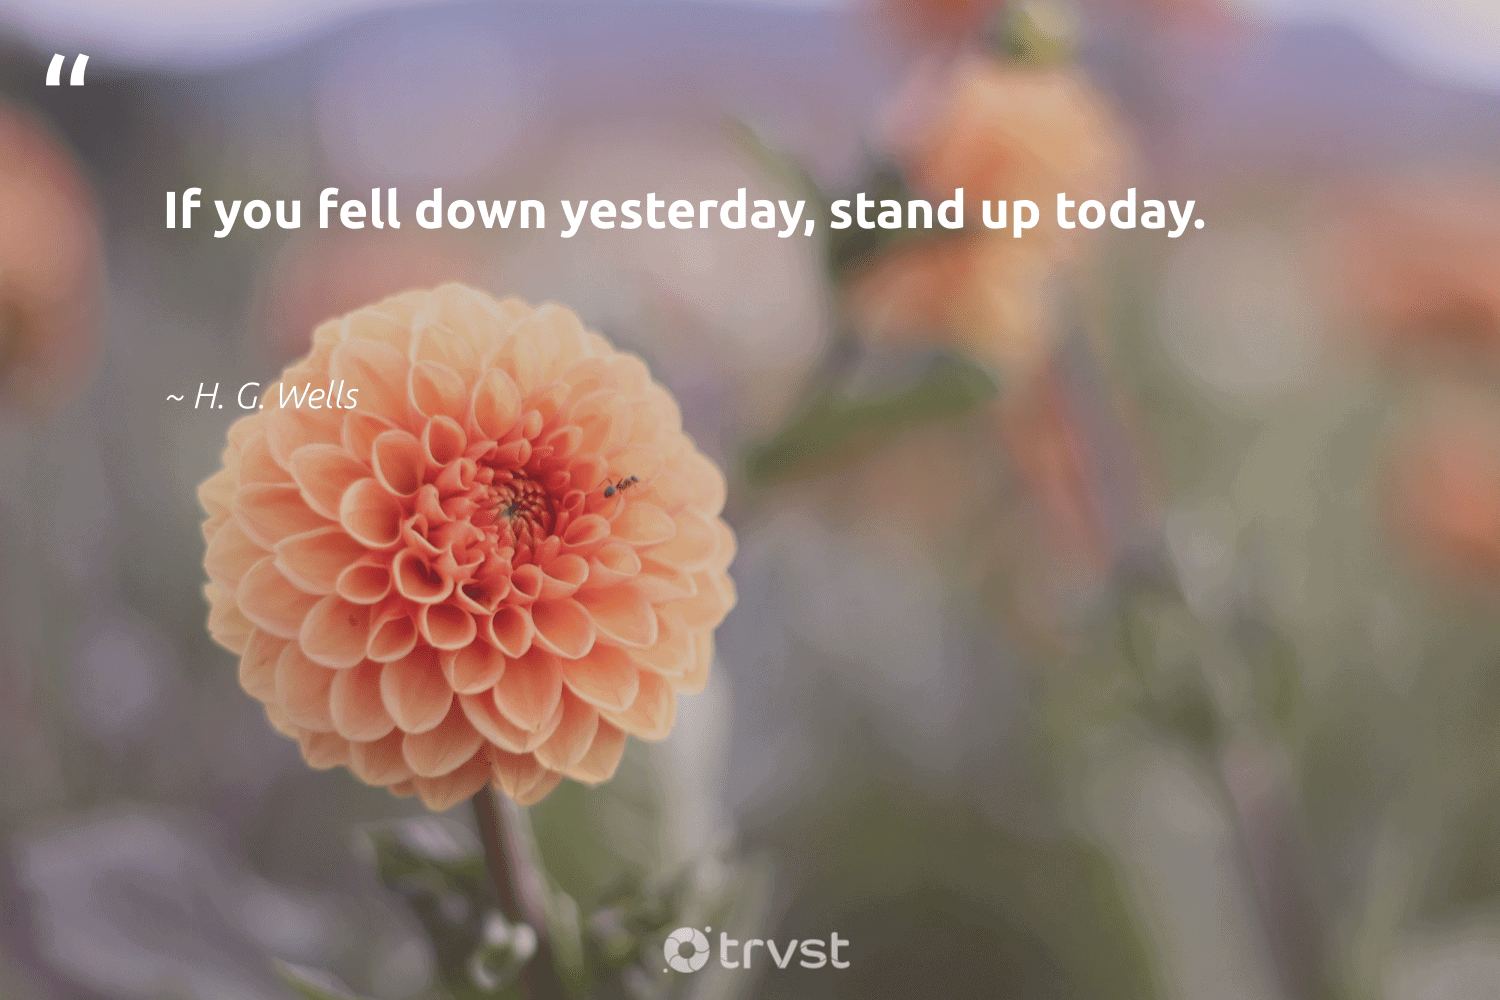 """""""If you fell down yesterday, stand up today.""""  - H. G. Wells #trvst #quotes #softskills #dogood #futureofwork #gogreen #nevergiveup #thinkgreen #begreat #impact #ecoconscious #bethechange"""